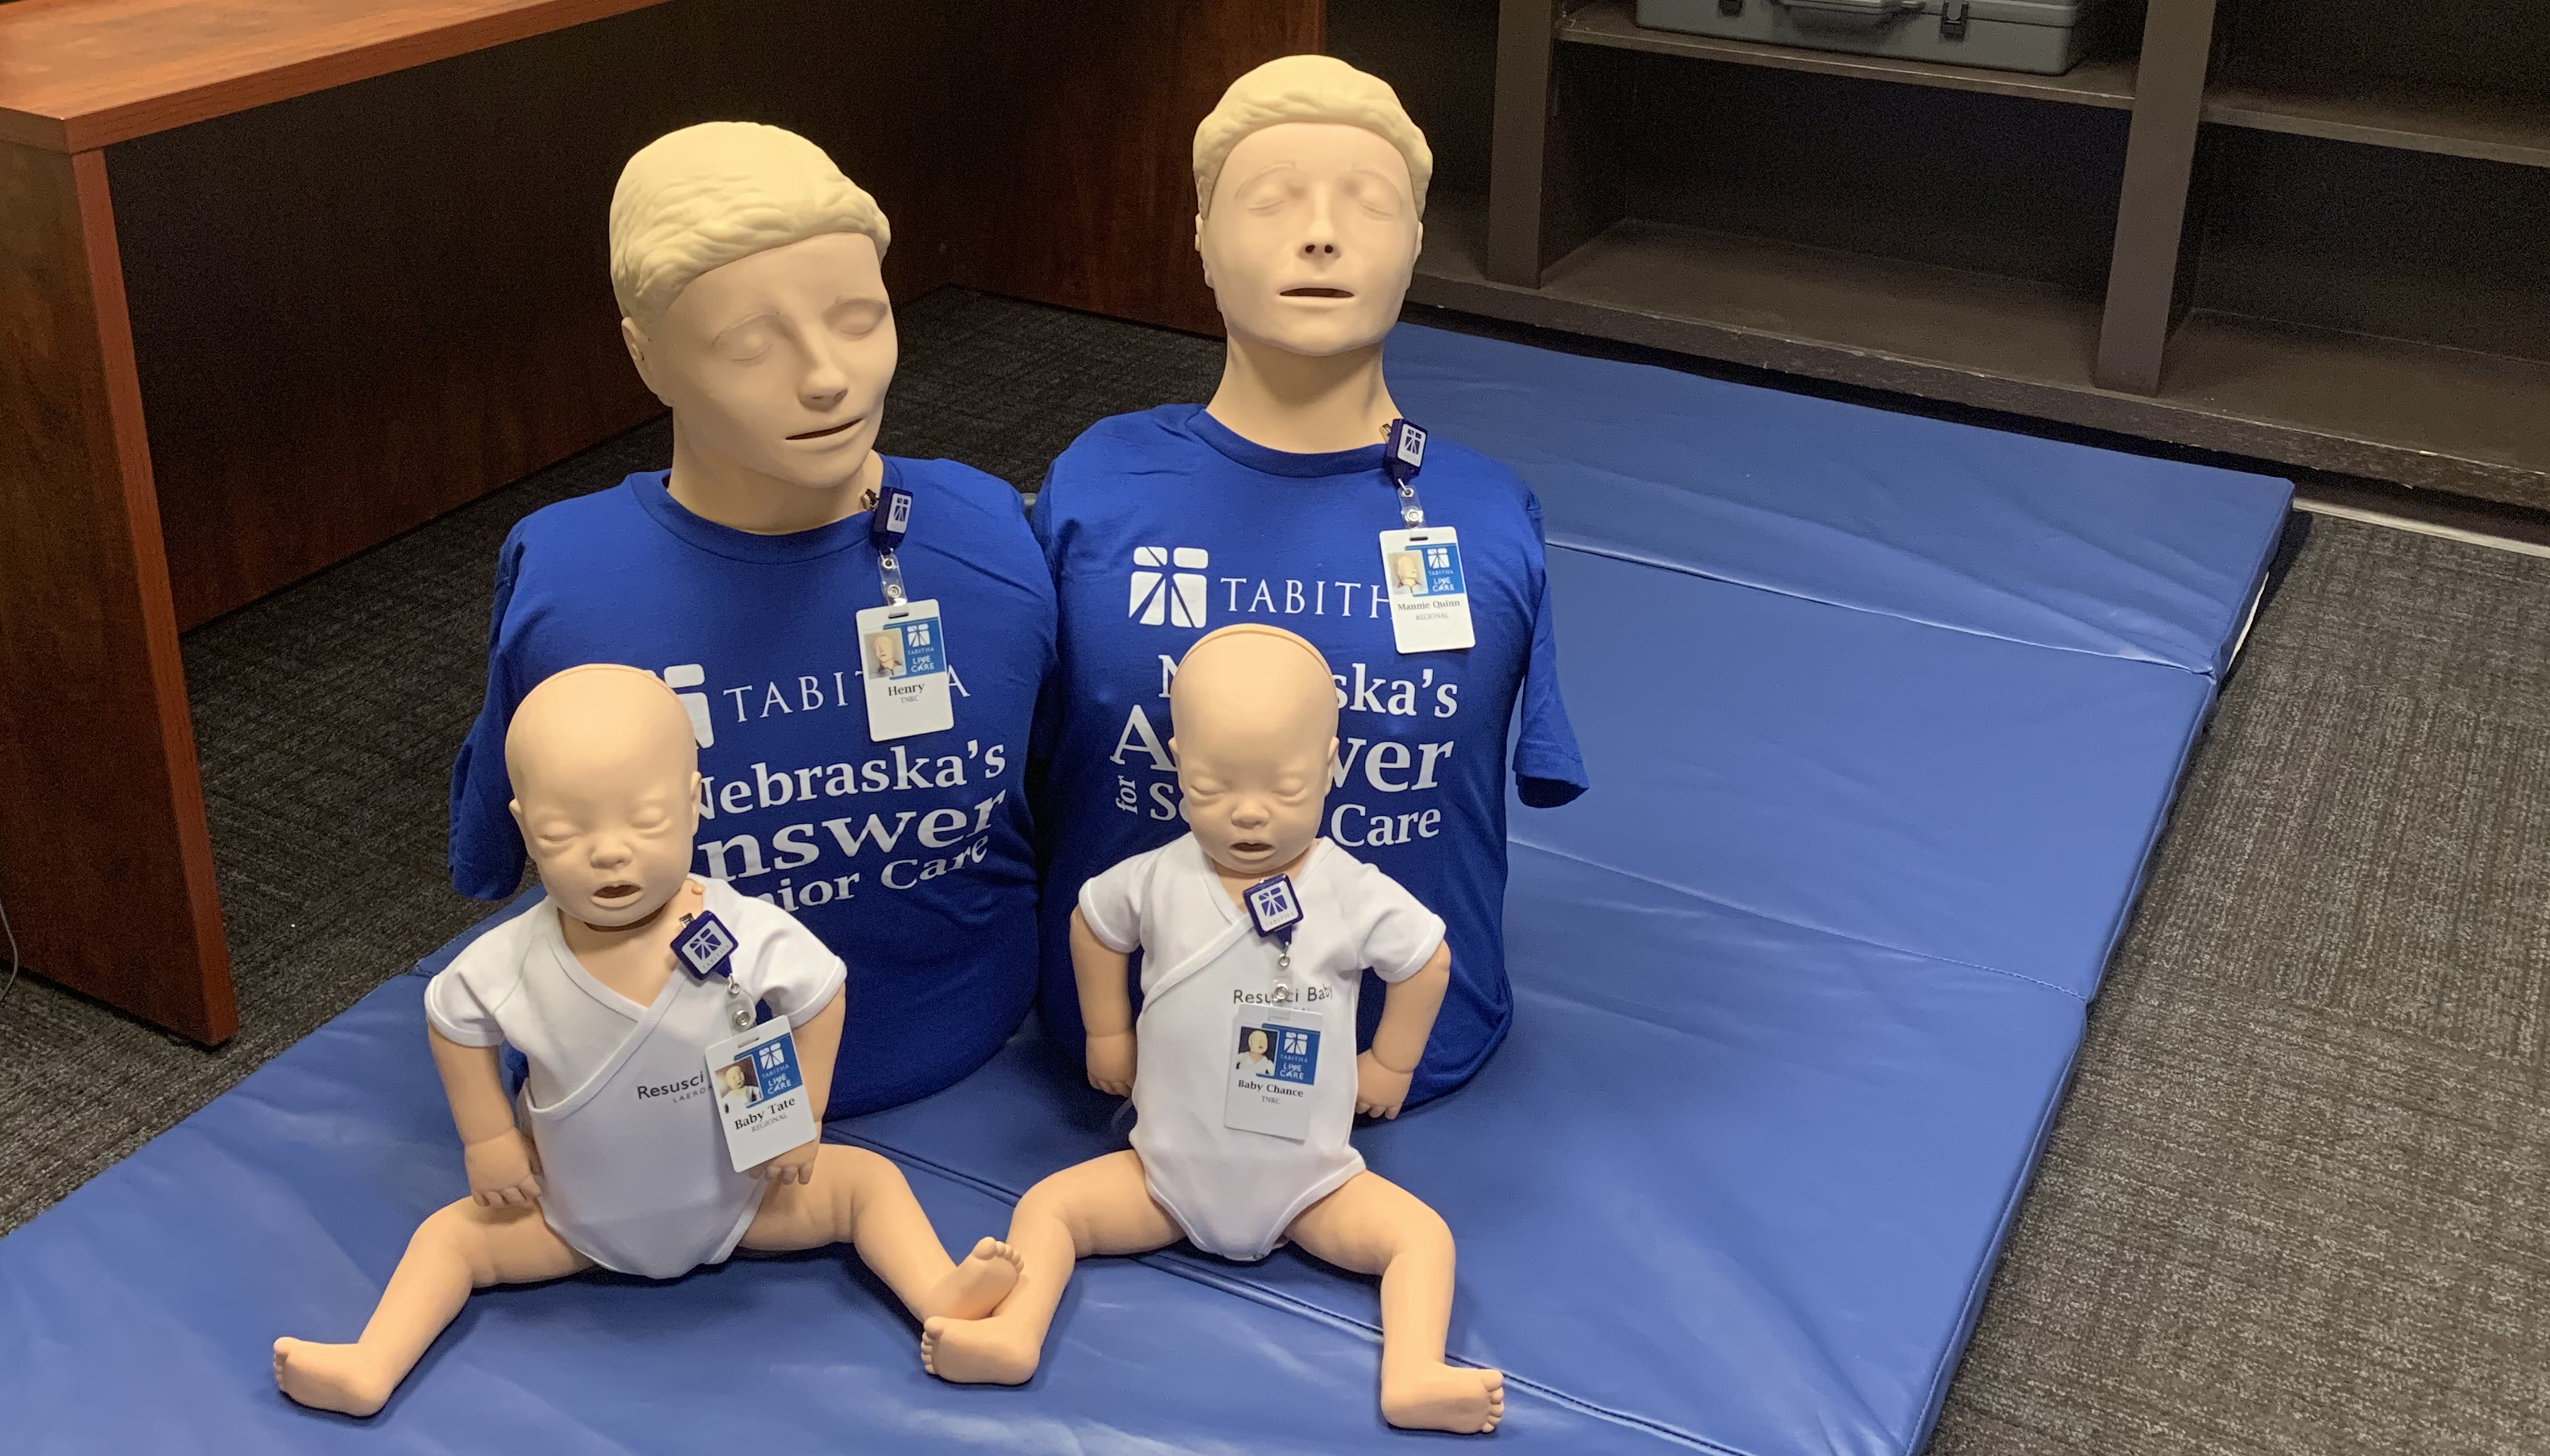 CPR Lab Voice Activated Manikins